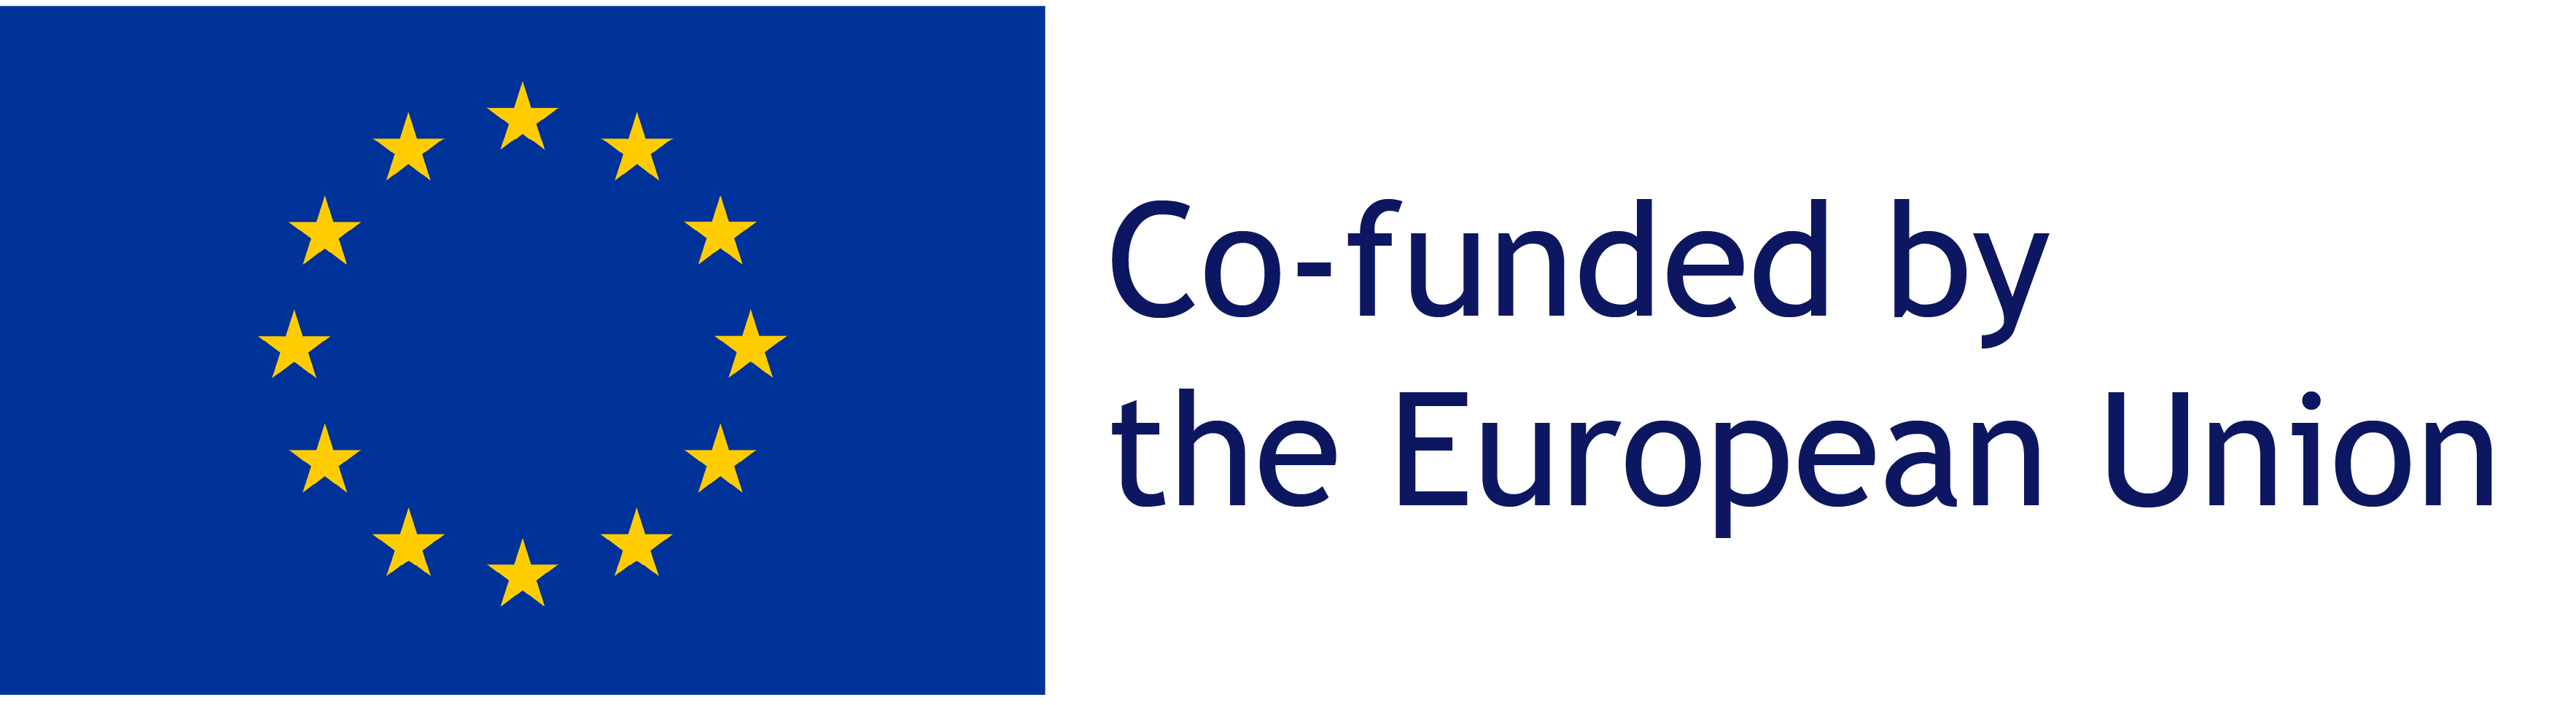 Image result for eu logo co funded by european union